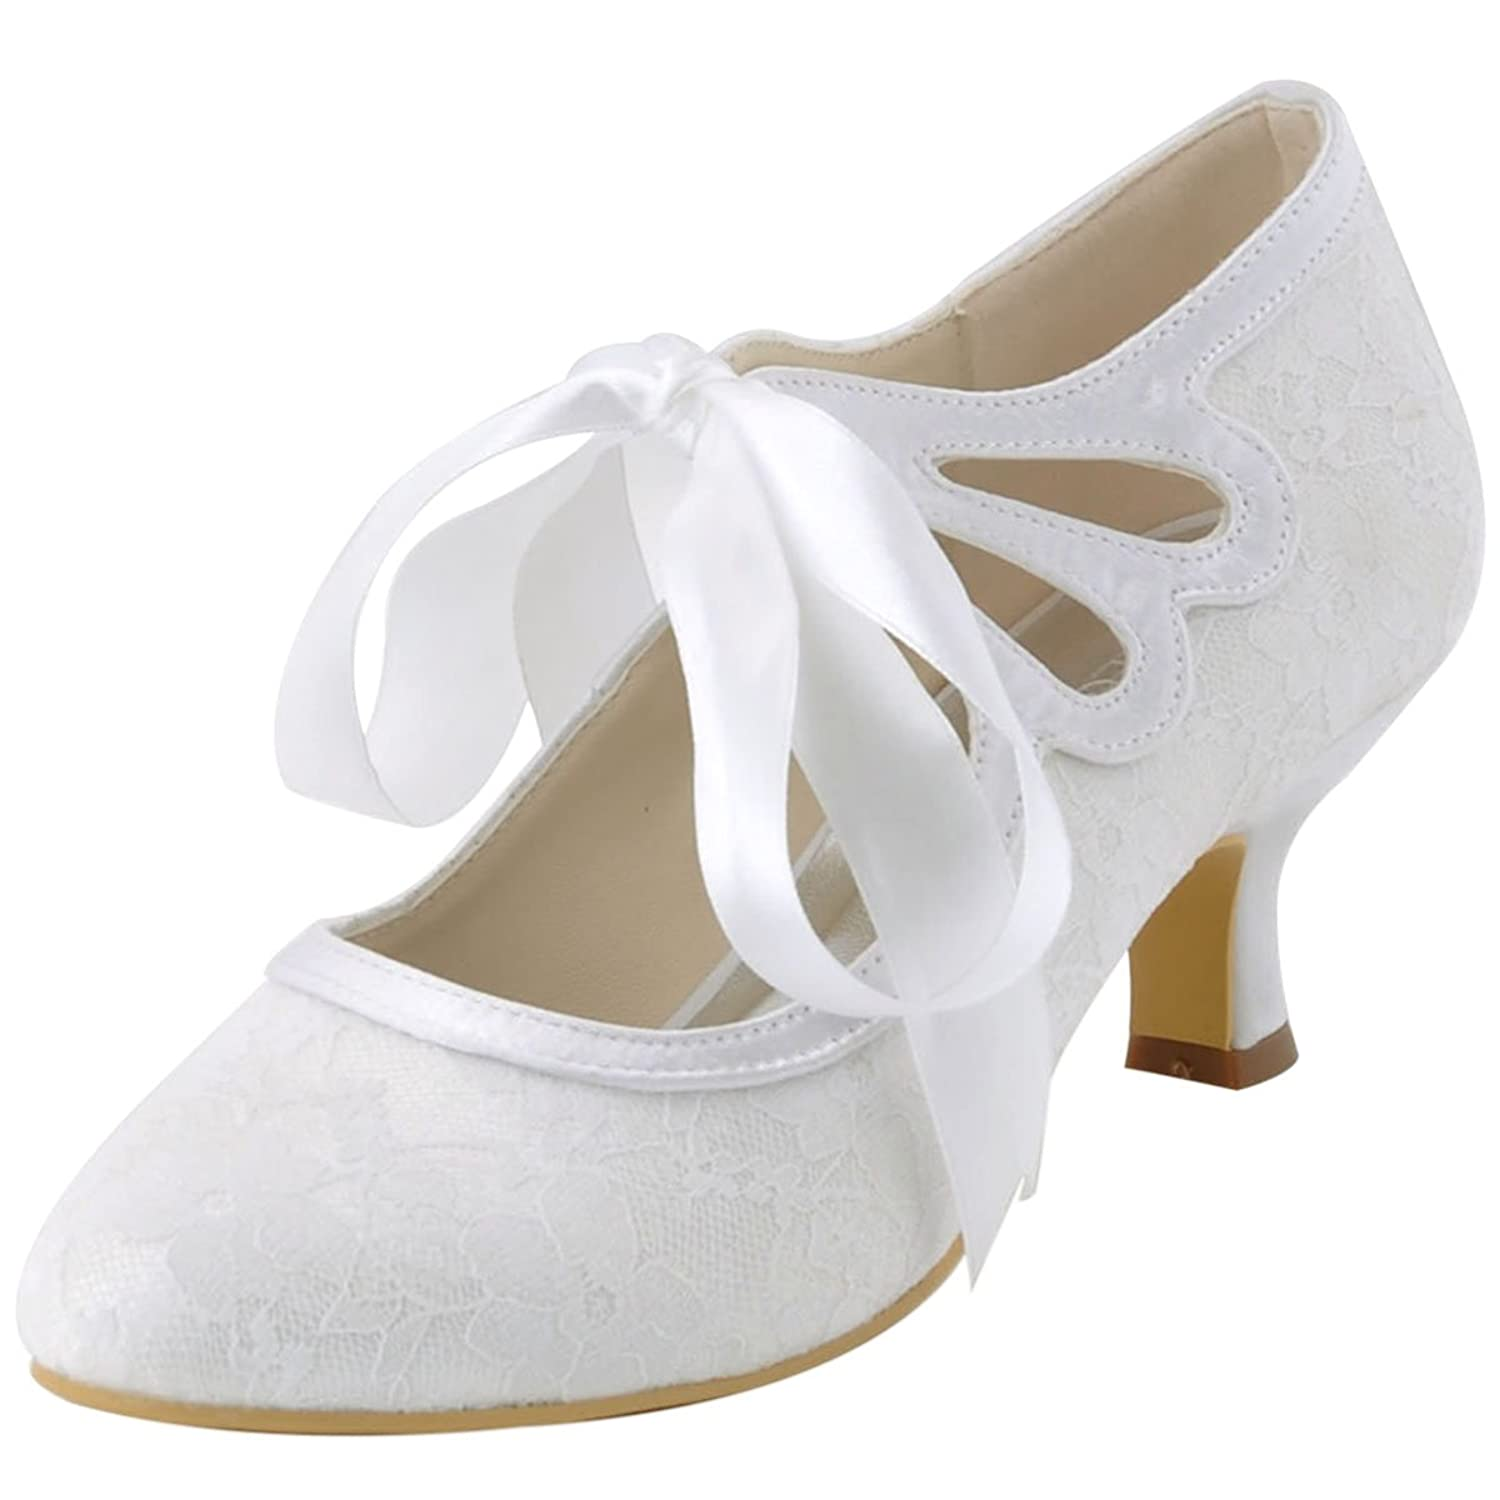 Vintage Wedding Shoes, Flats, Boots, Heels ElegantPark HC1521 Womens Mary Jane Closed Toe Low Heel Pumps Lace Wedding Dress Shoes $48.95 AT vintagedancer.com